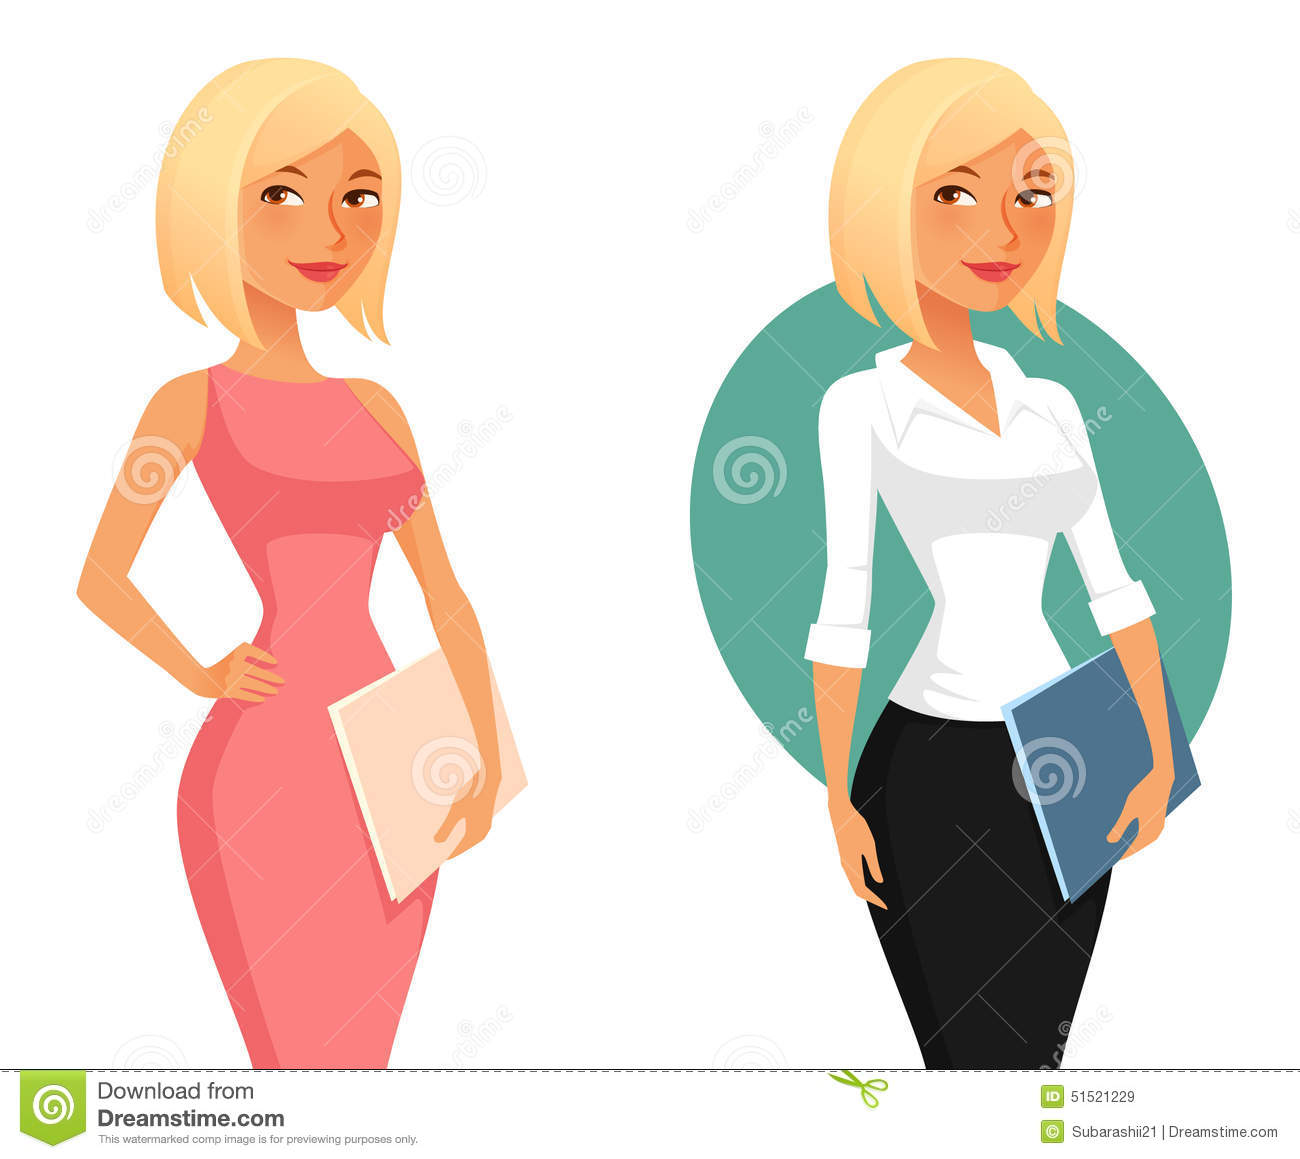 Get Silver Blonde Hair also 3357866 as well Zeltlager 2009 moreover Women in black sweater moreover Stock Photo Old Book Illustration Image8638460. on cartoon blonde clipart